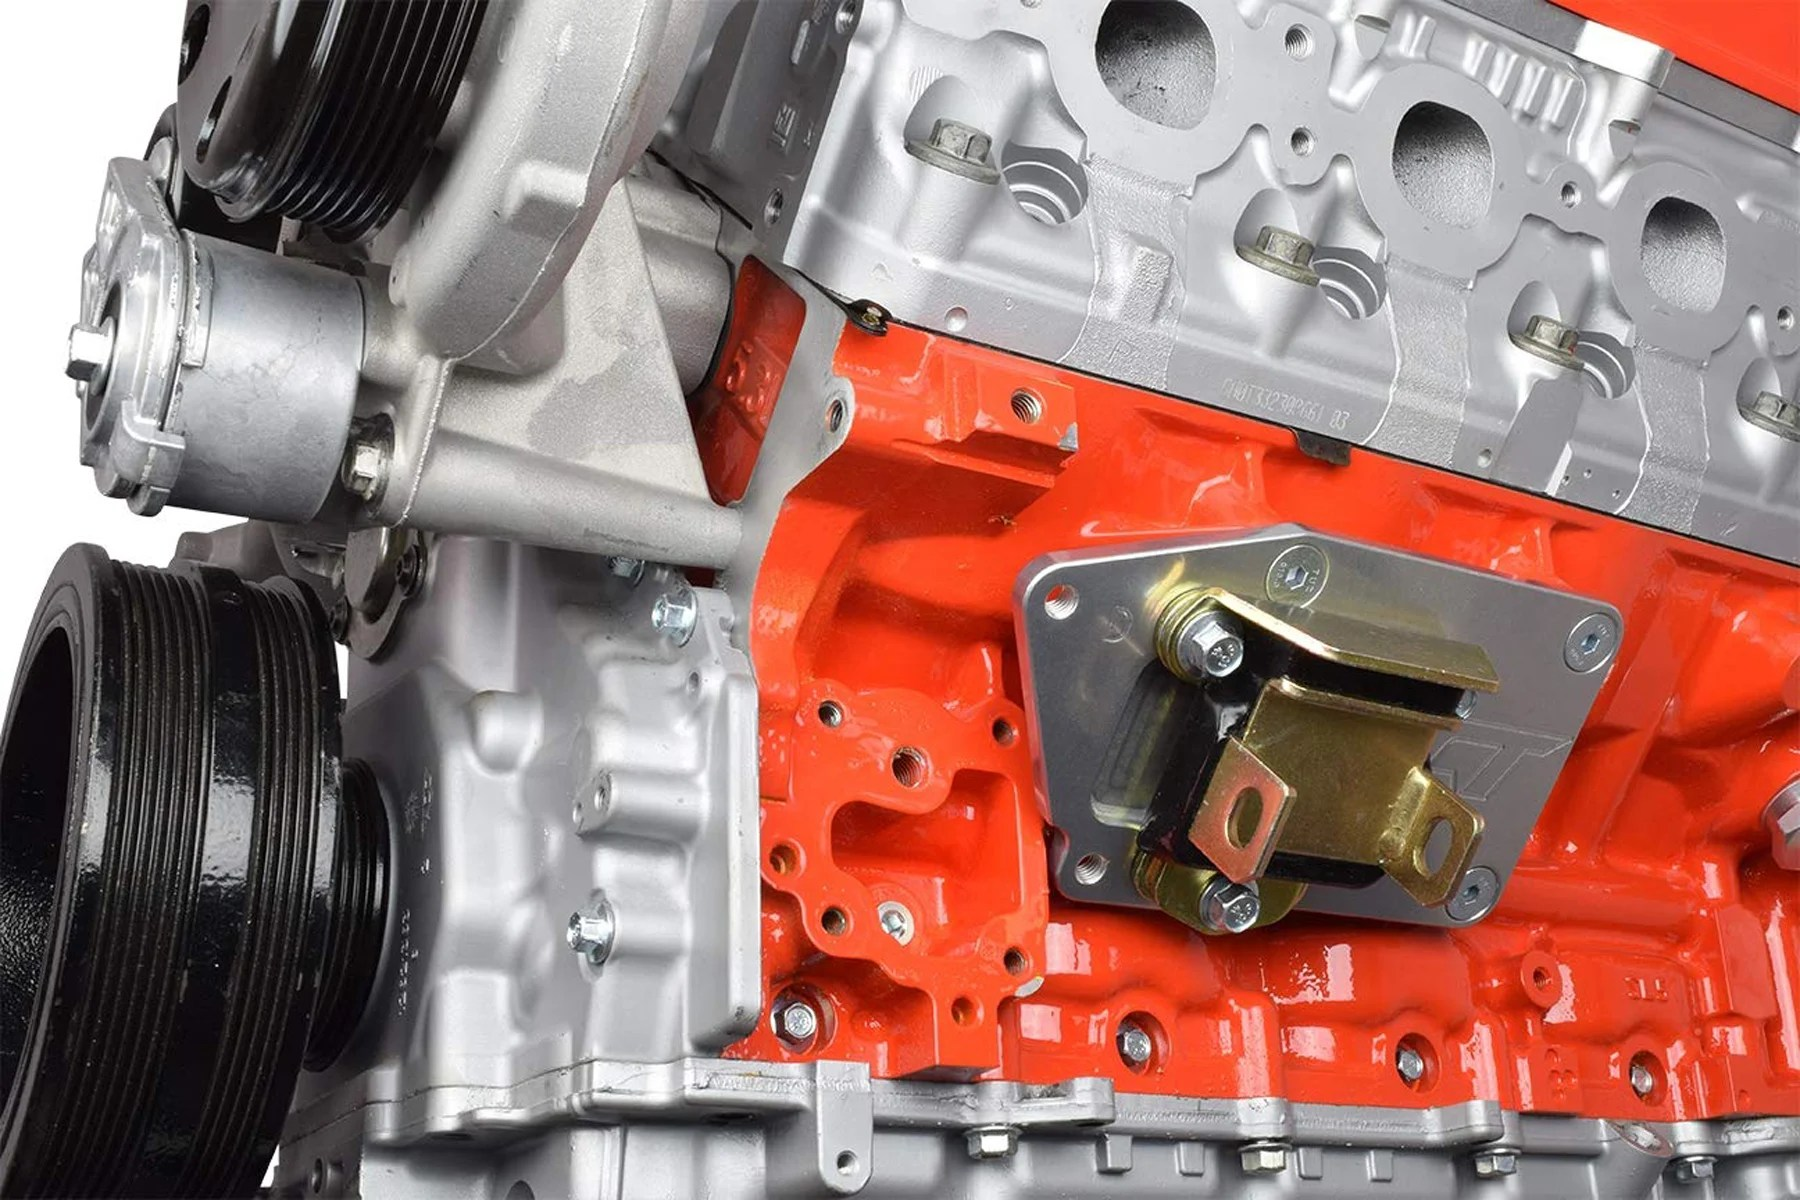 hight resolution of these brackets from ict billet allow a gen v lt series engine to be bolted into a vehicle that originally had a small block chevy engine lt engine swap